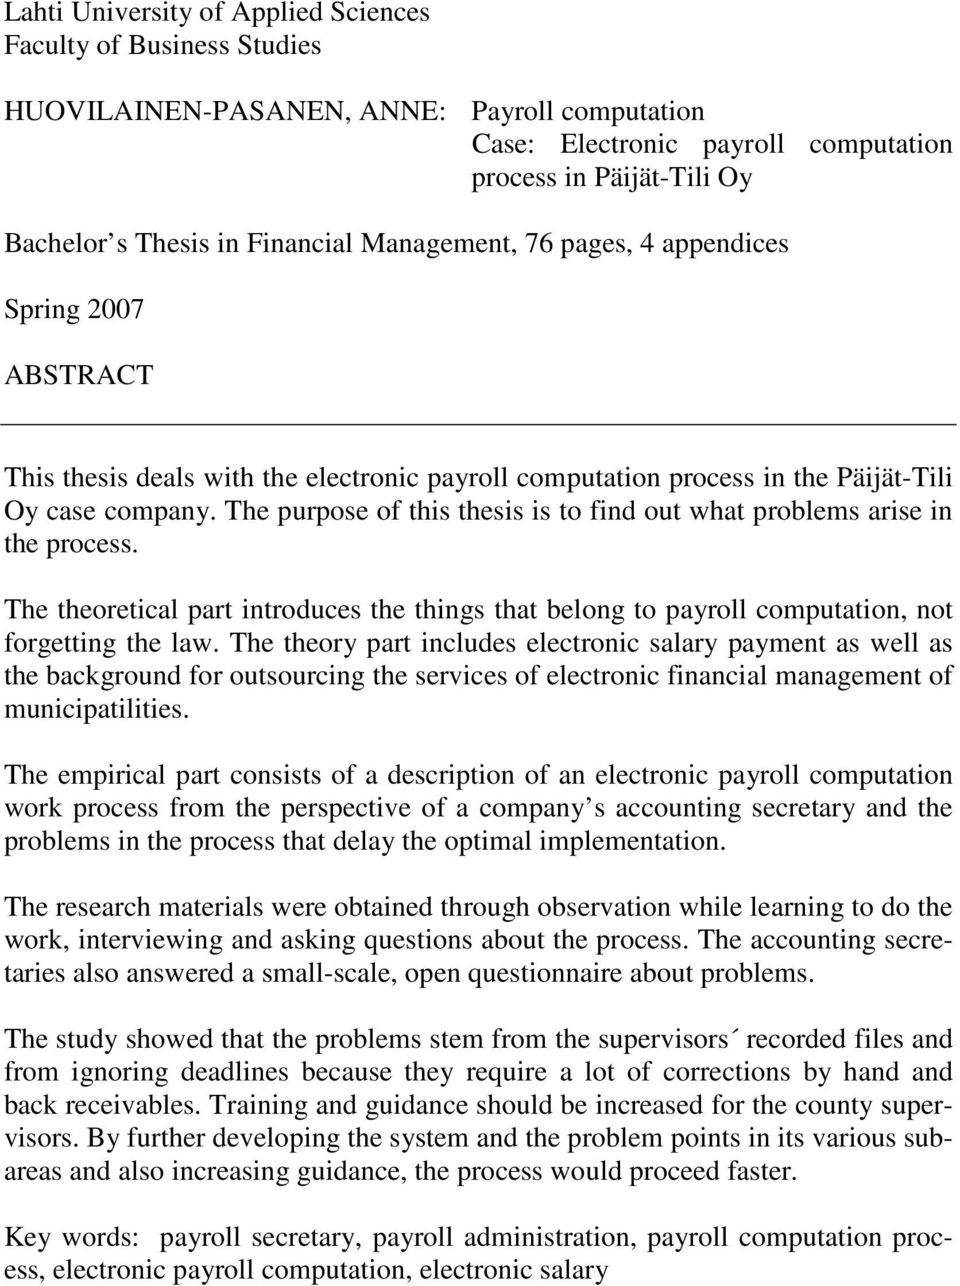 The purpose of this thesis is to find out what problems arise in the process. The theoretical part introduces the things that belong to payroll computation, not forgetting the law.